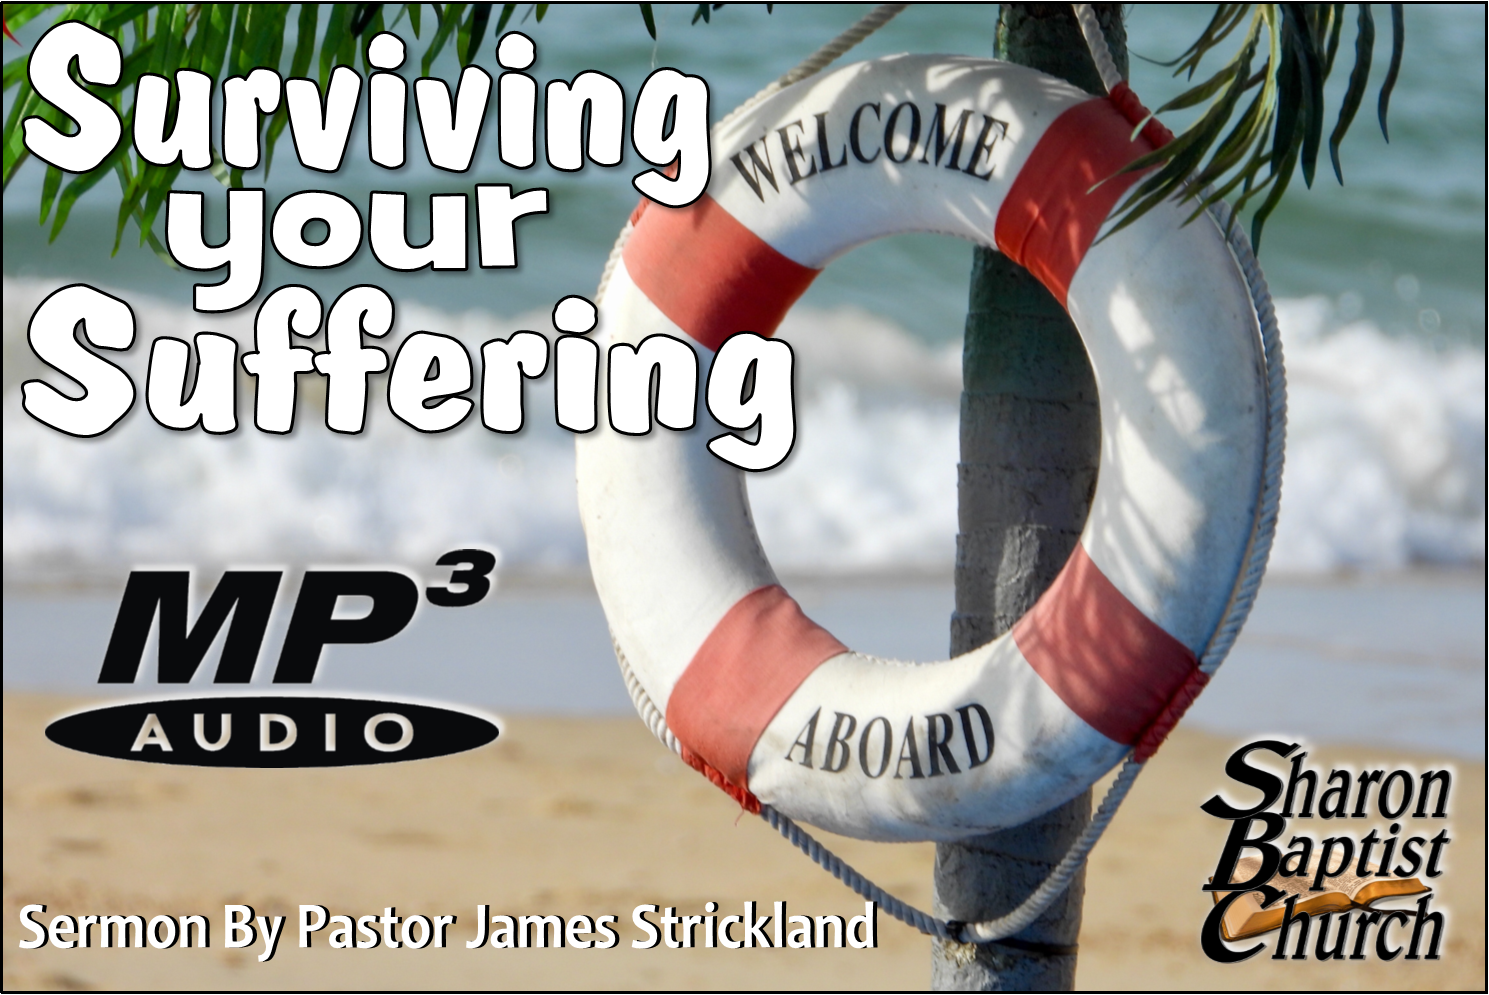 Surviving your Suffering - SERMON - Audio MP3